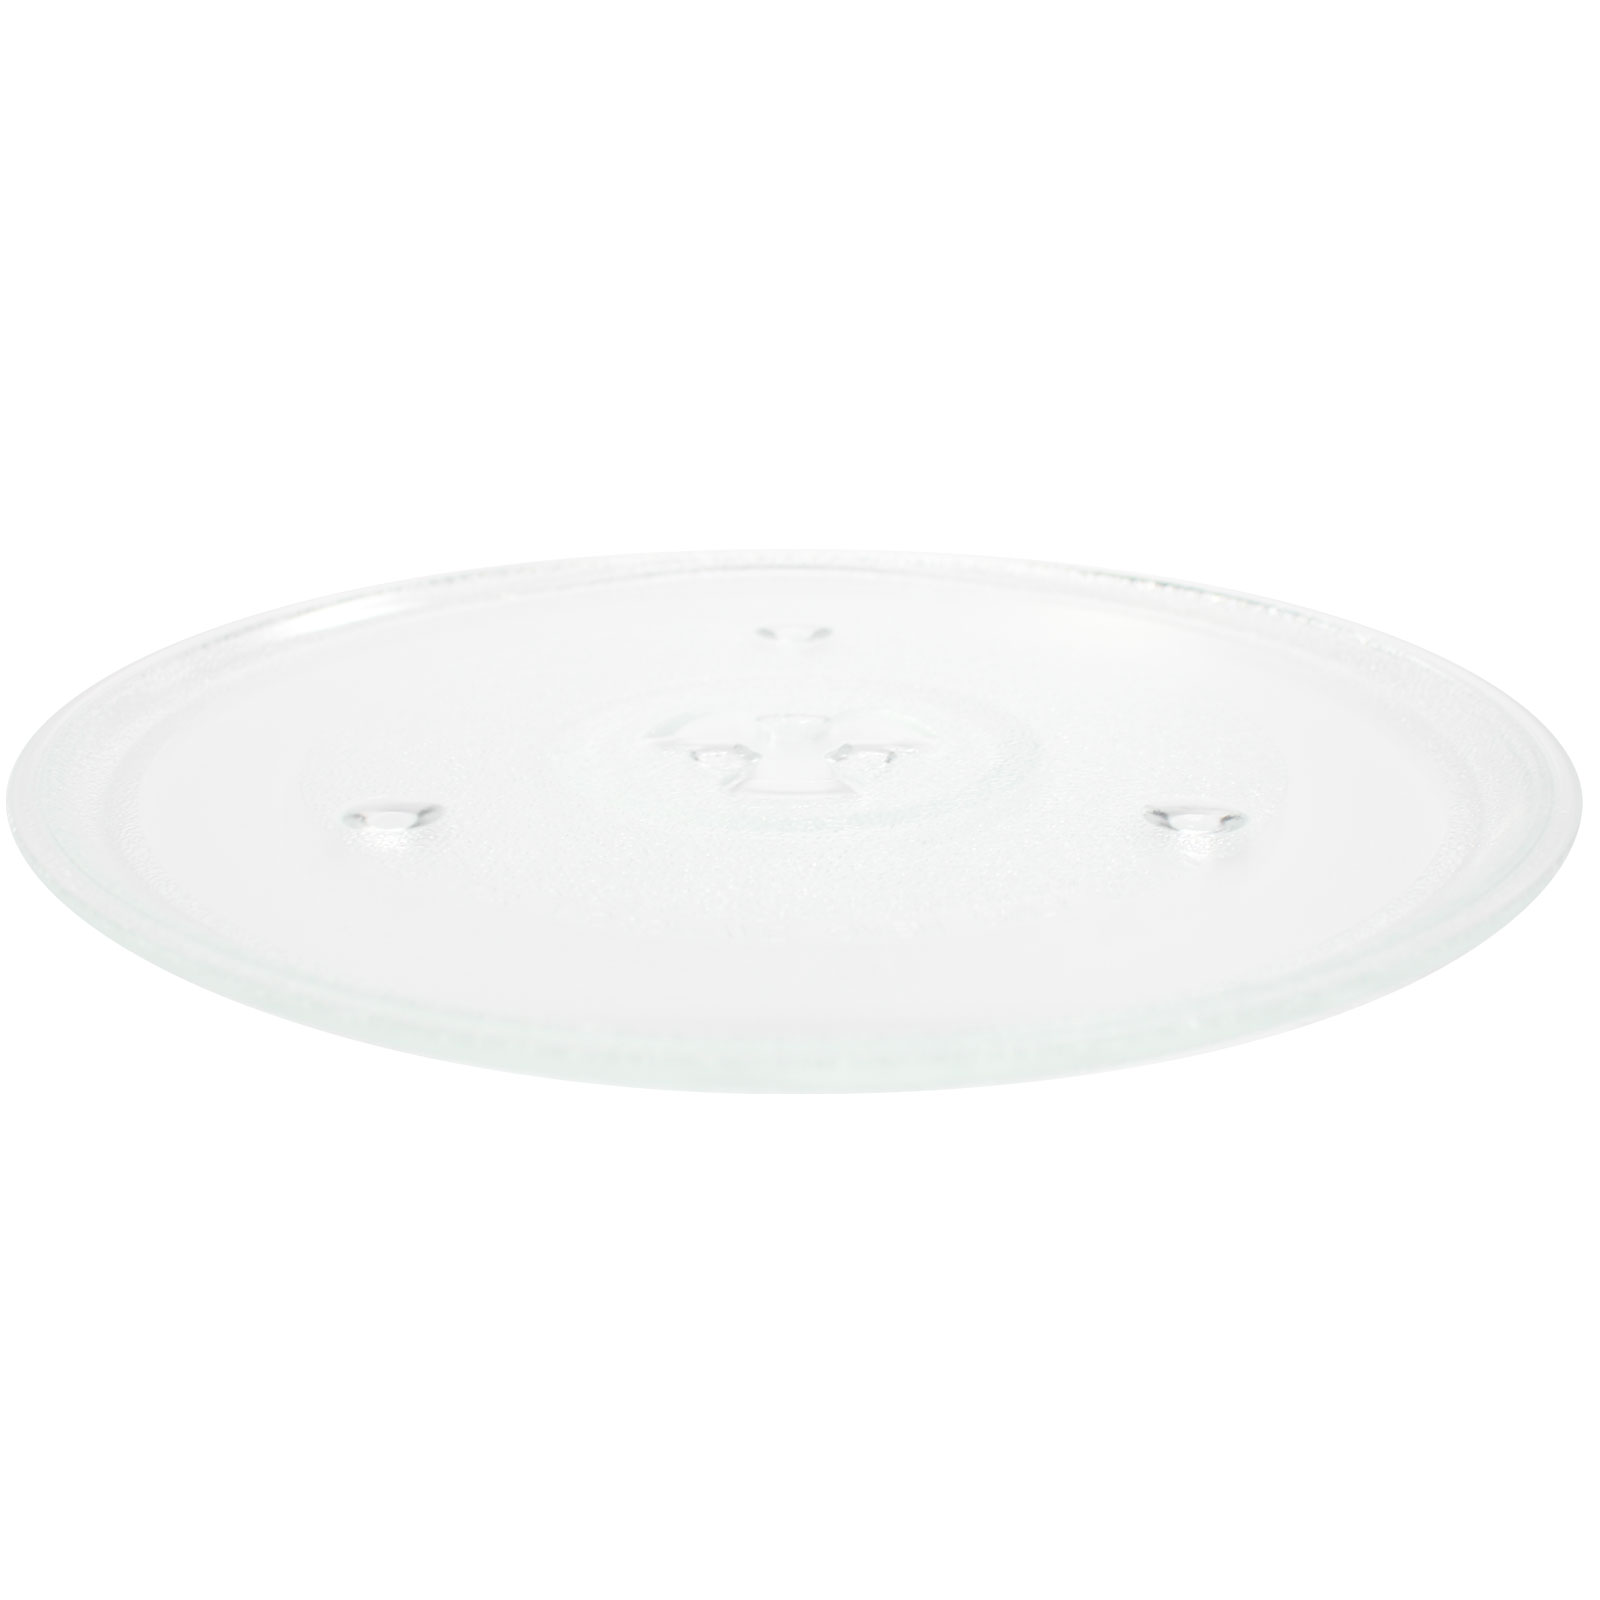 replacement emerson mw9339sb microwave glass plate compatible emerson p23 252100500497 microwave glass turntable tray 10 1 2 270mm